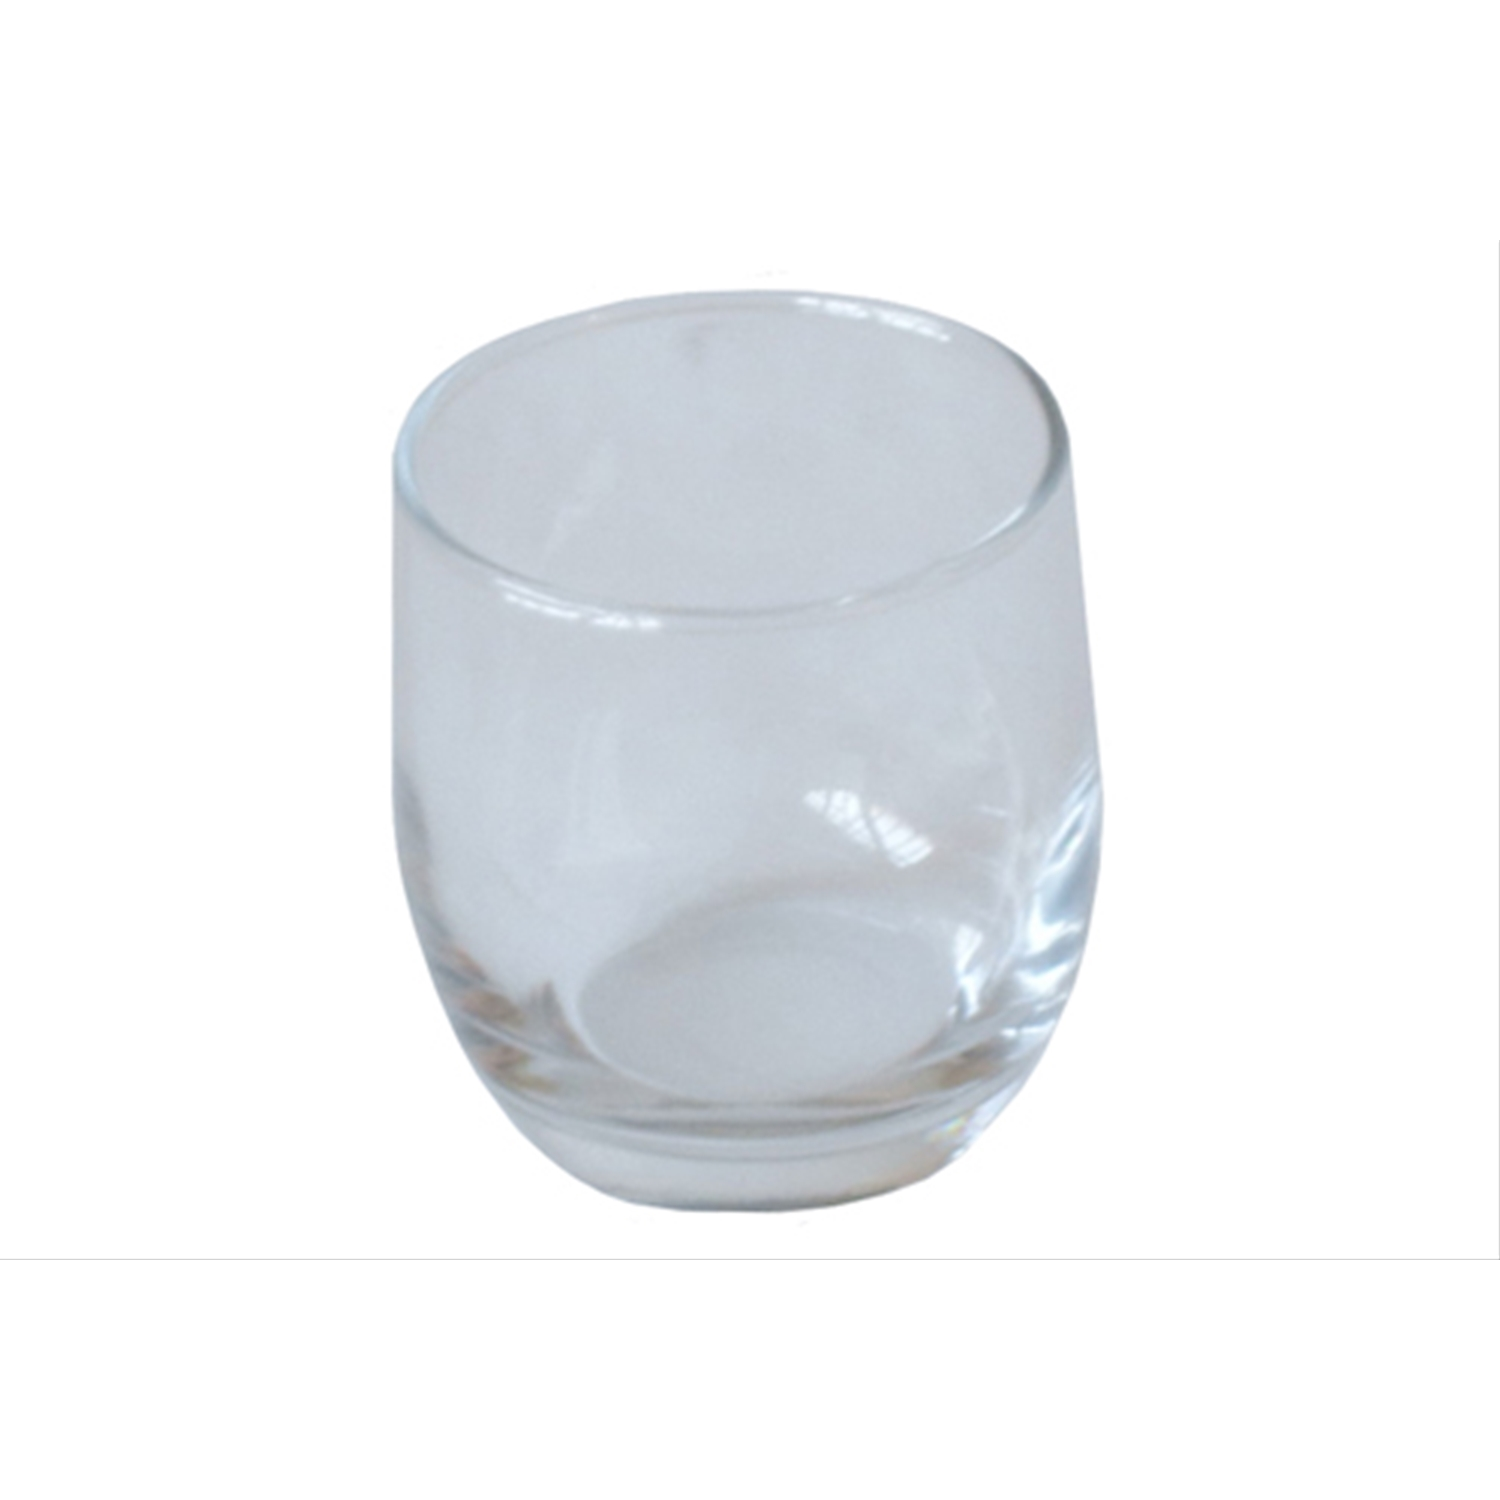 Image of Tulip Old Fashioned Glasses, Box Of 4